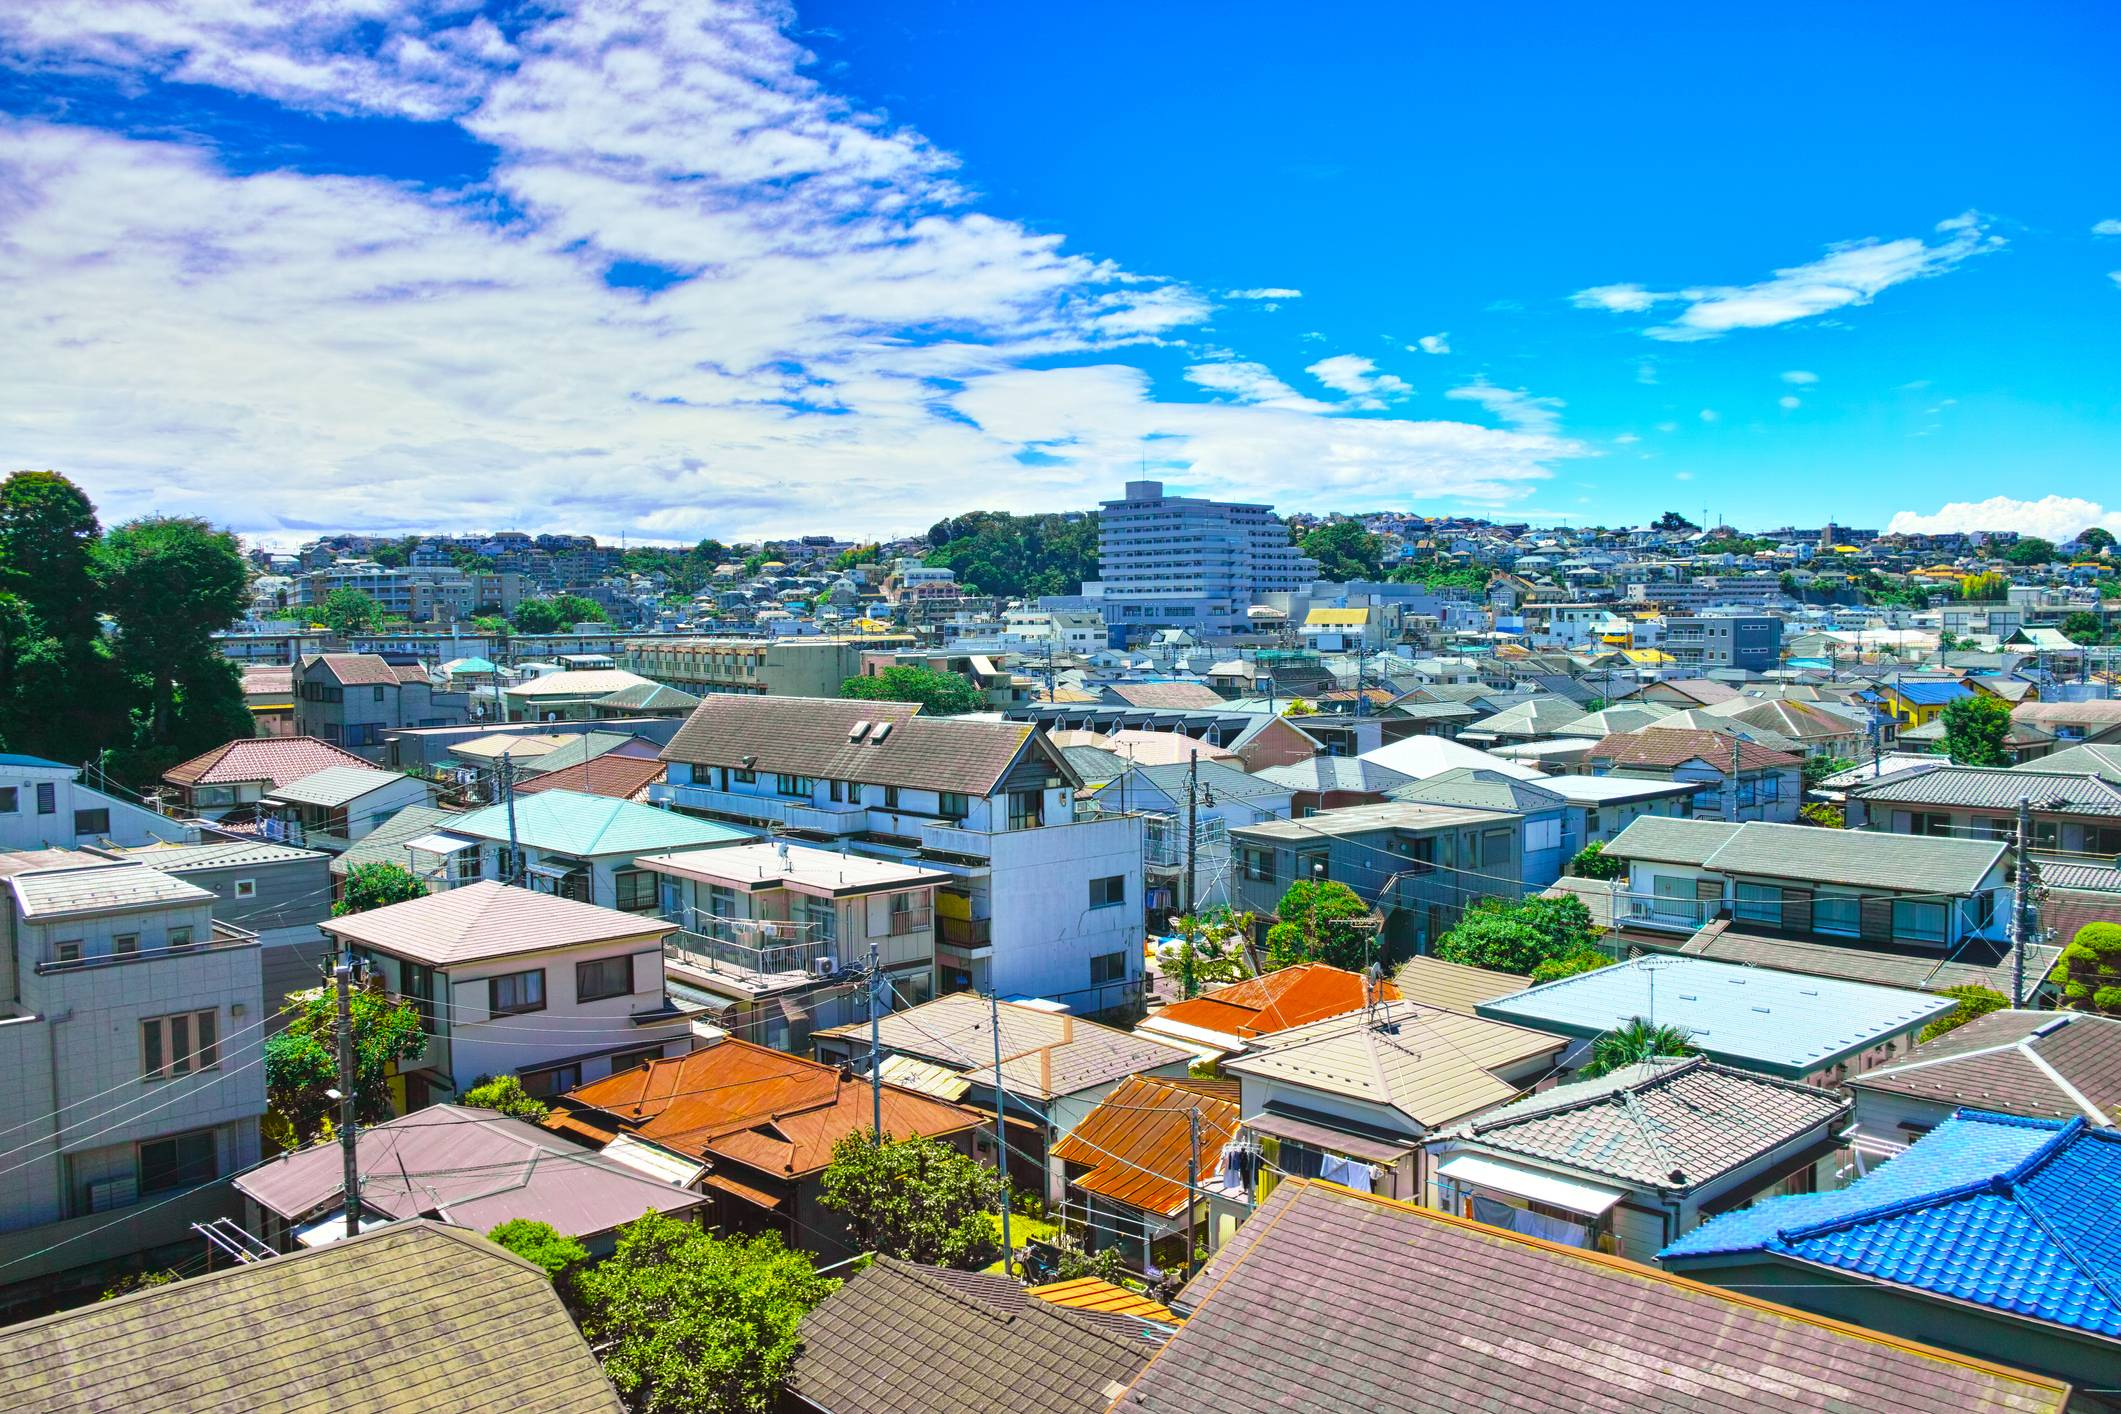 Take your pick: The COVID-19 pandemic has spurred many foreign residents to consider buying property in Japan. Realtors are here to tell you that it's not as difficult as you may think. | GETTY IMAGES